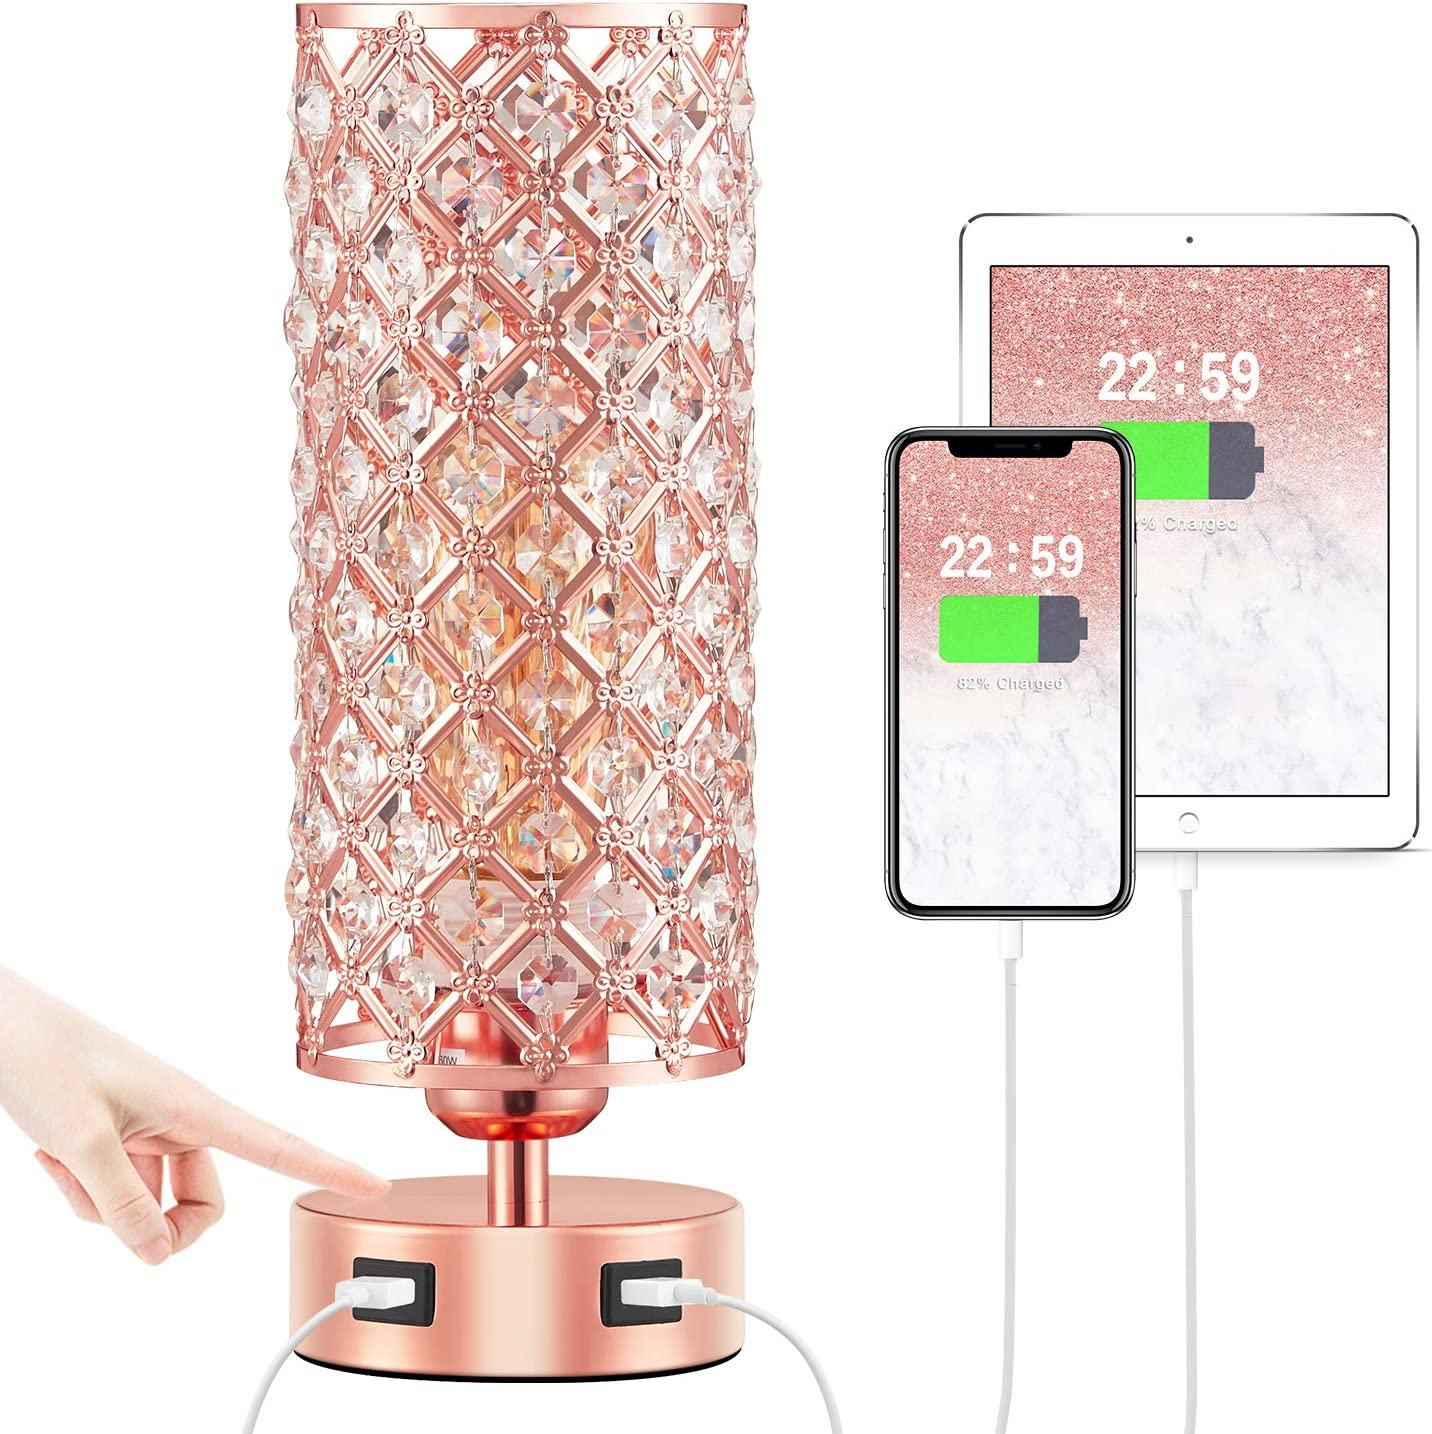 Touch USB Table Lamp, Rose Gold Lamp 3 Way Dimmable with Crystal Lampshade, Bedside Lamp with Dual USB Ports, Touch Light for Living Room Bedroom Home, Charge Phone Ipad Kiddle/etc. (Bulb Included)